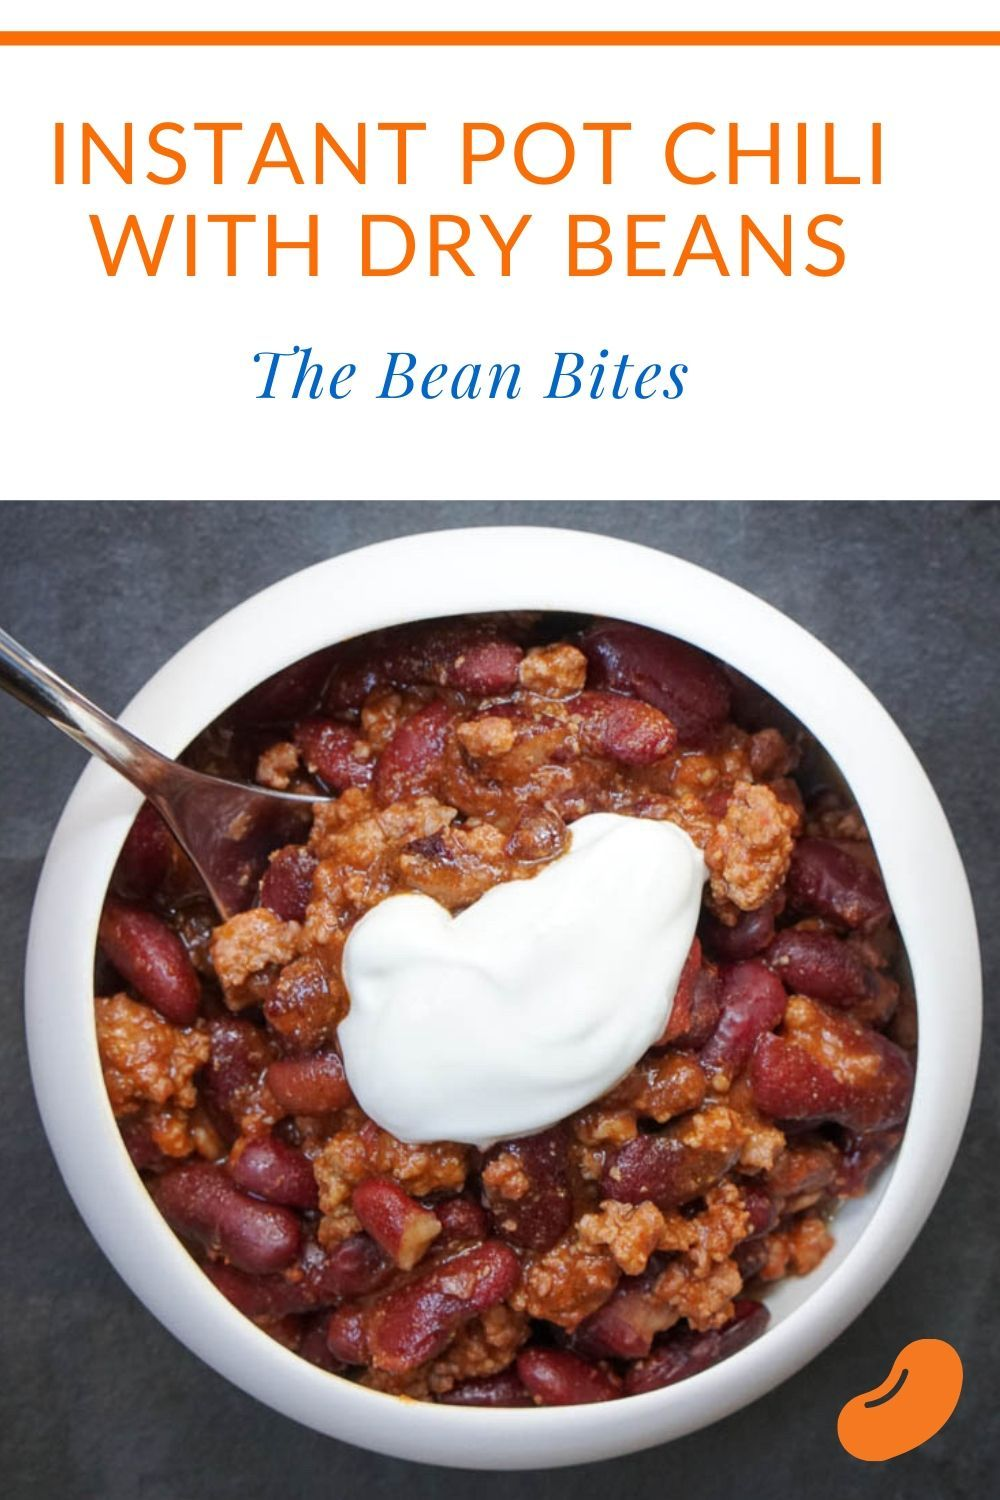 Instant Pot Chili With Dried Beans And Beef Instant Pot Dinner Recipes Chili Instant Pot Recipe Dry Beans Recipe